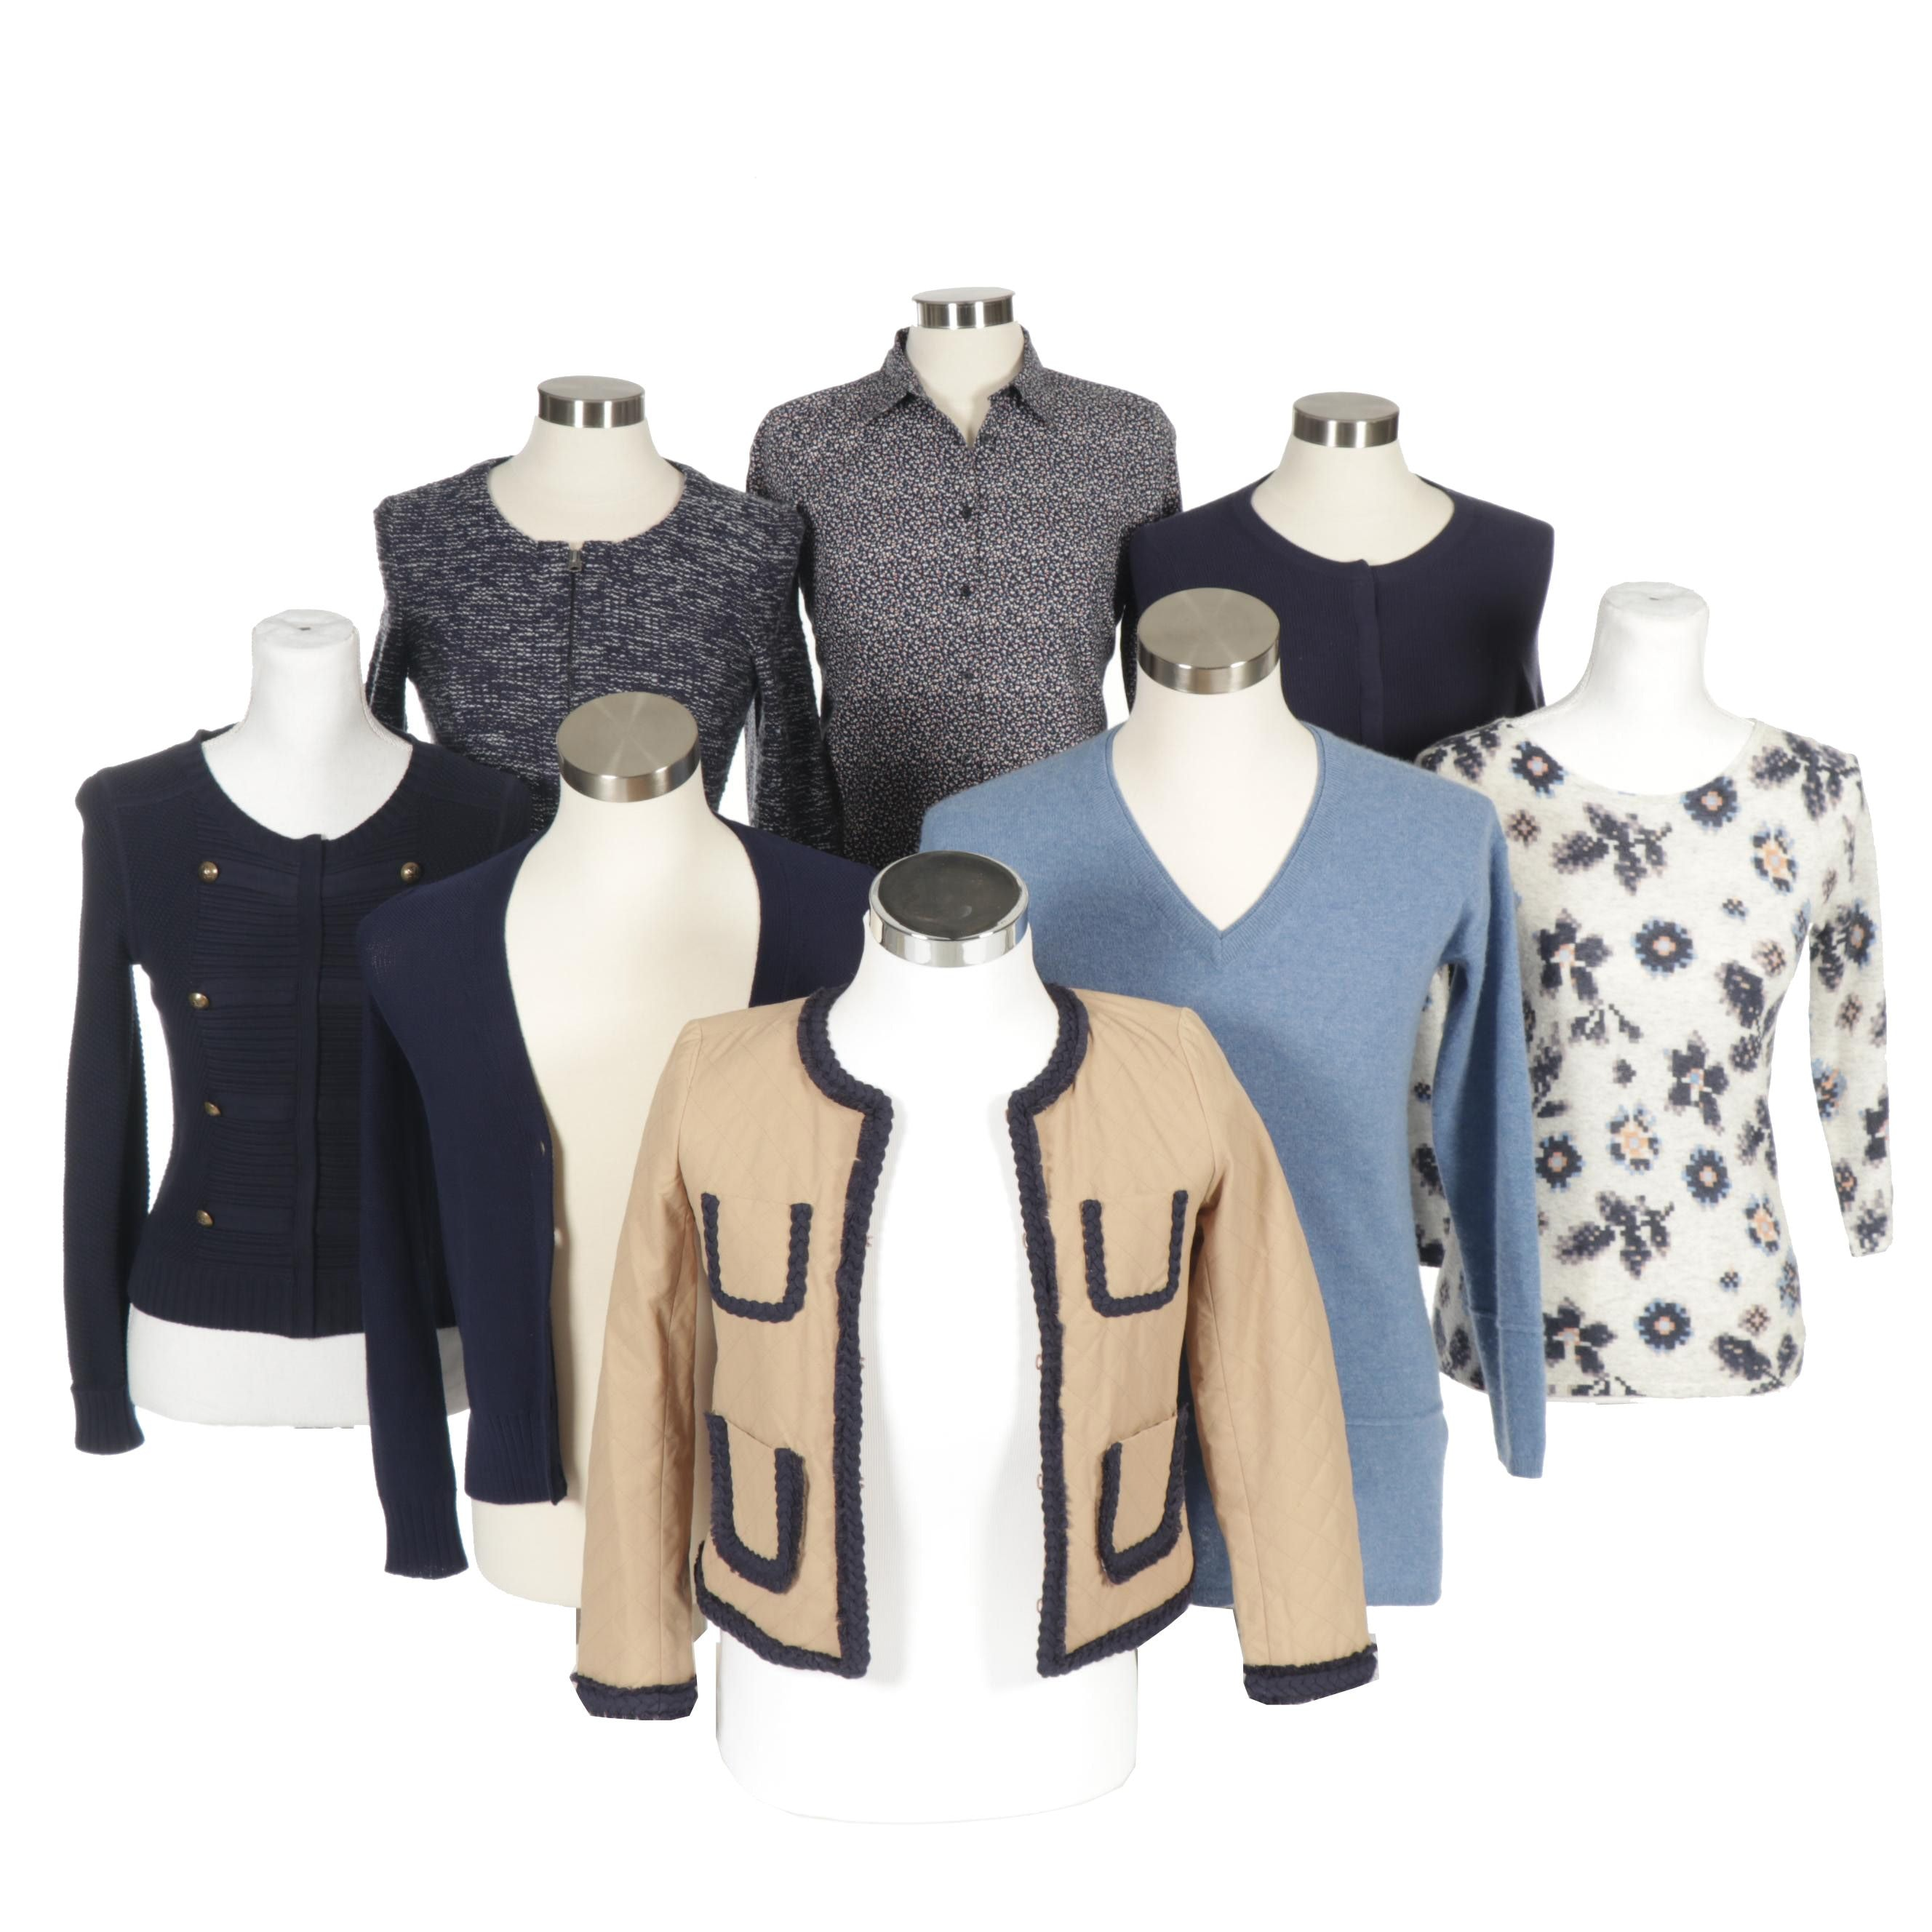 Women's Contemporary Tops, Sweaters and Jacket with J. Crew, Ann Taylor and More